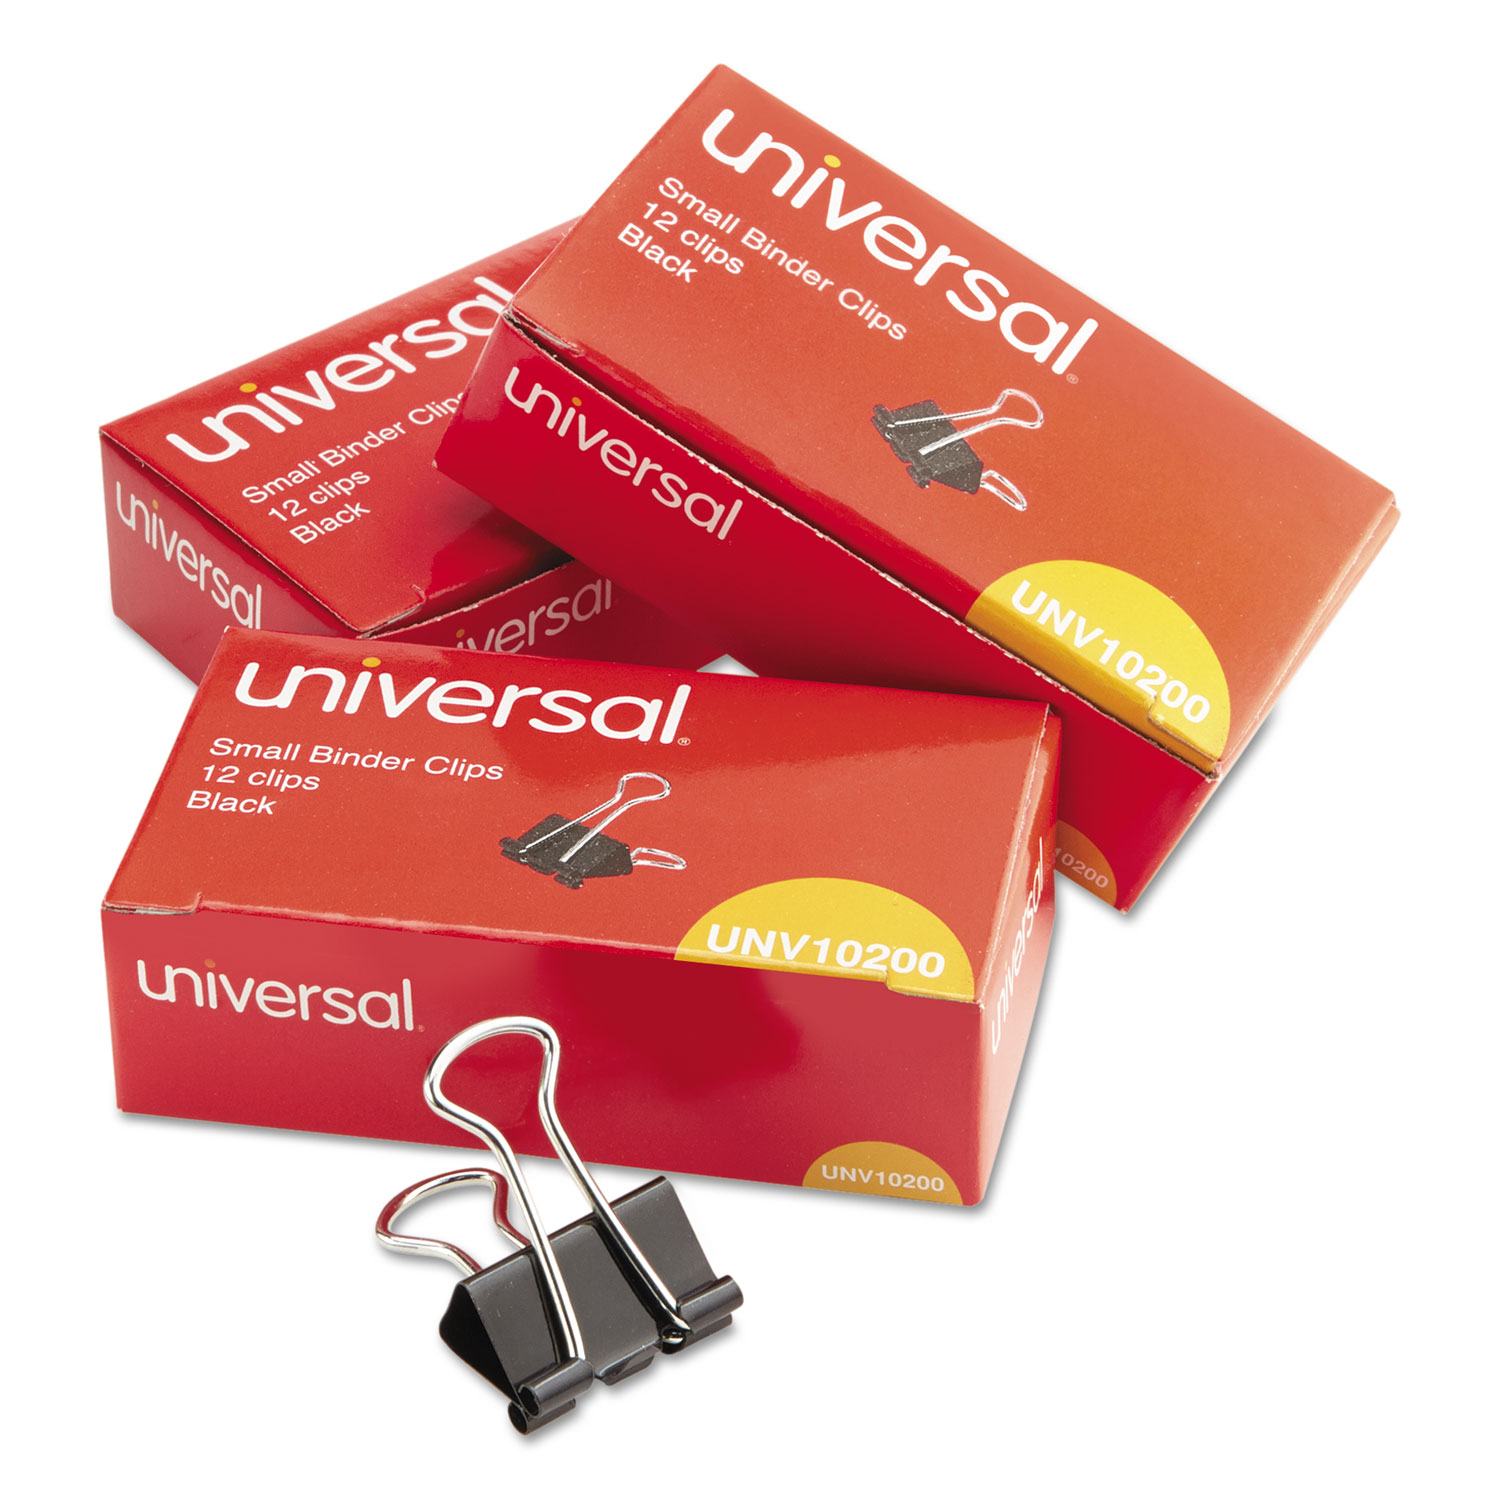 Small Binder Clips By Universal® UNV10200VP3